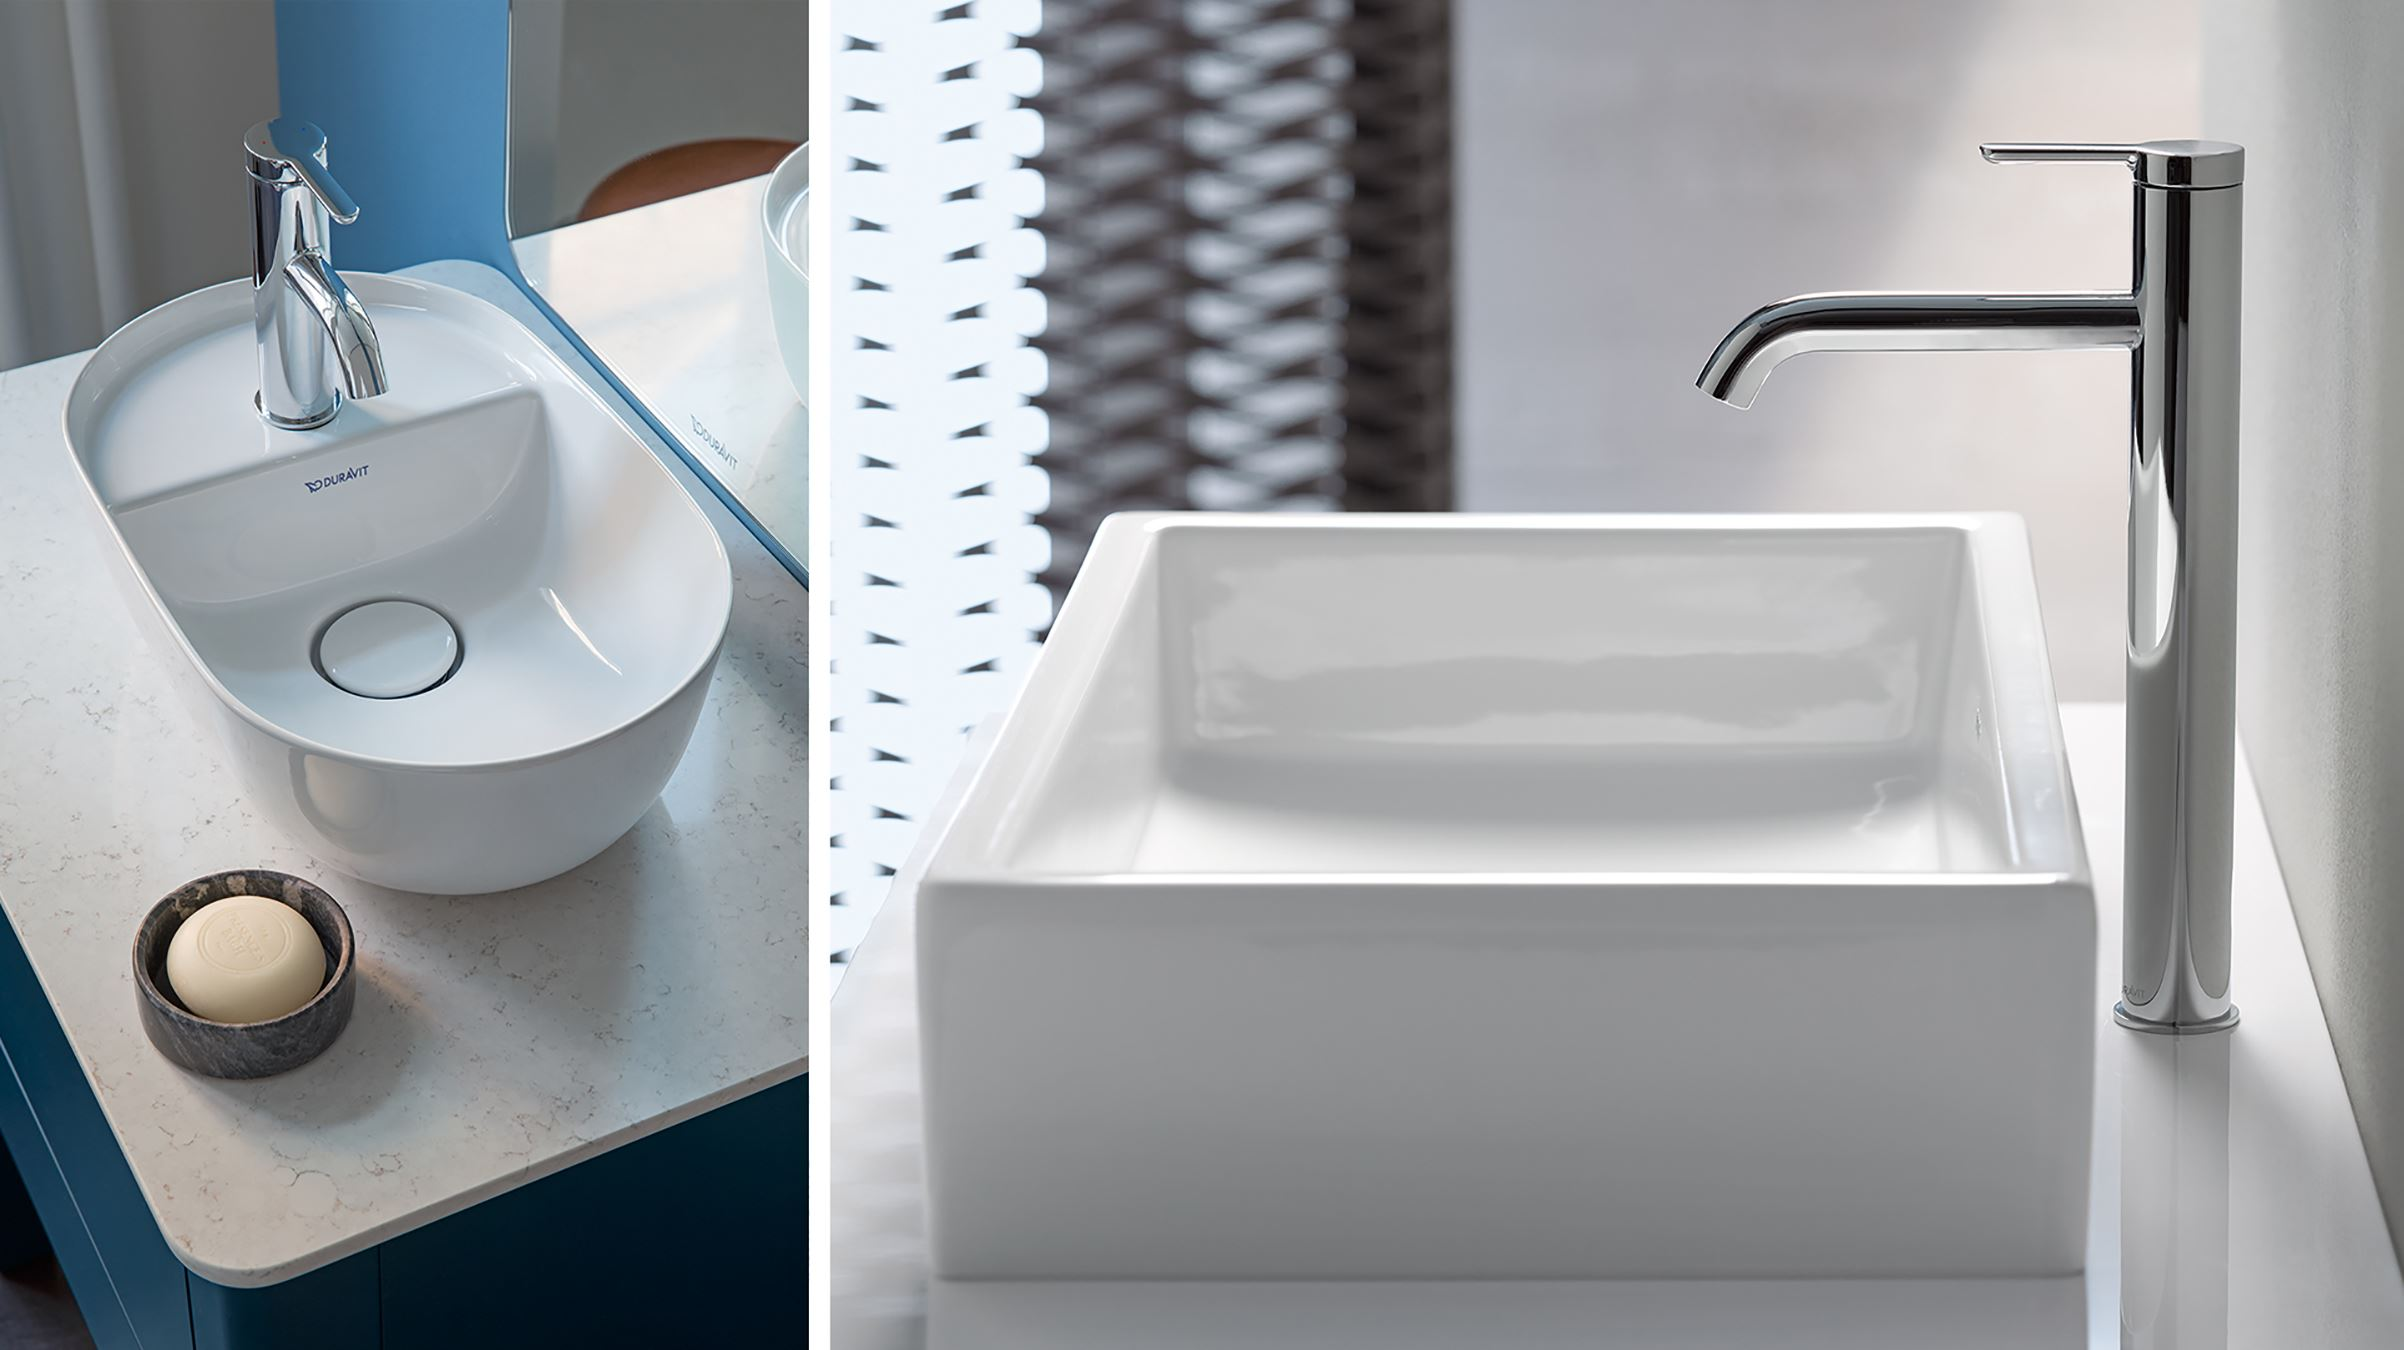 C1-by-Kurt-Merki-Jr_Duravit_04.jpg